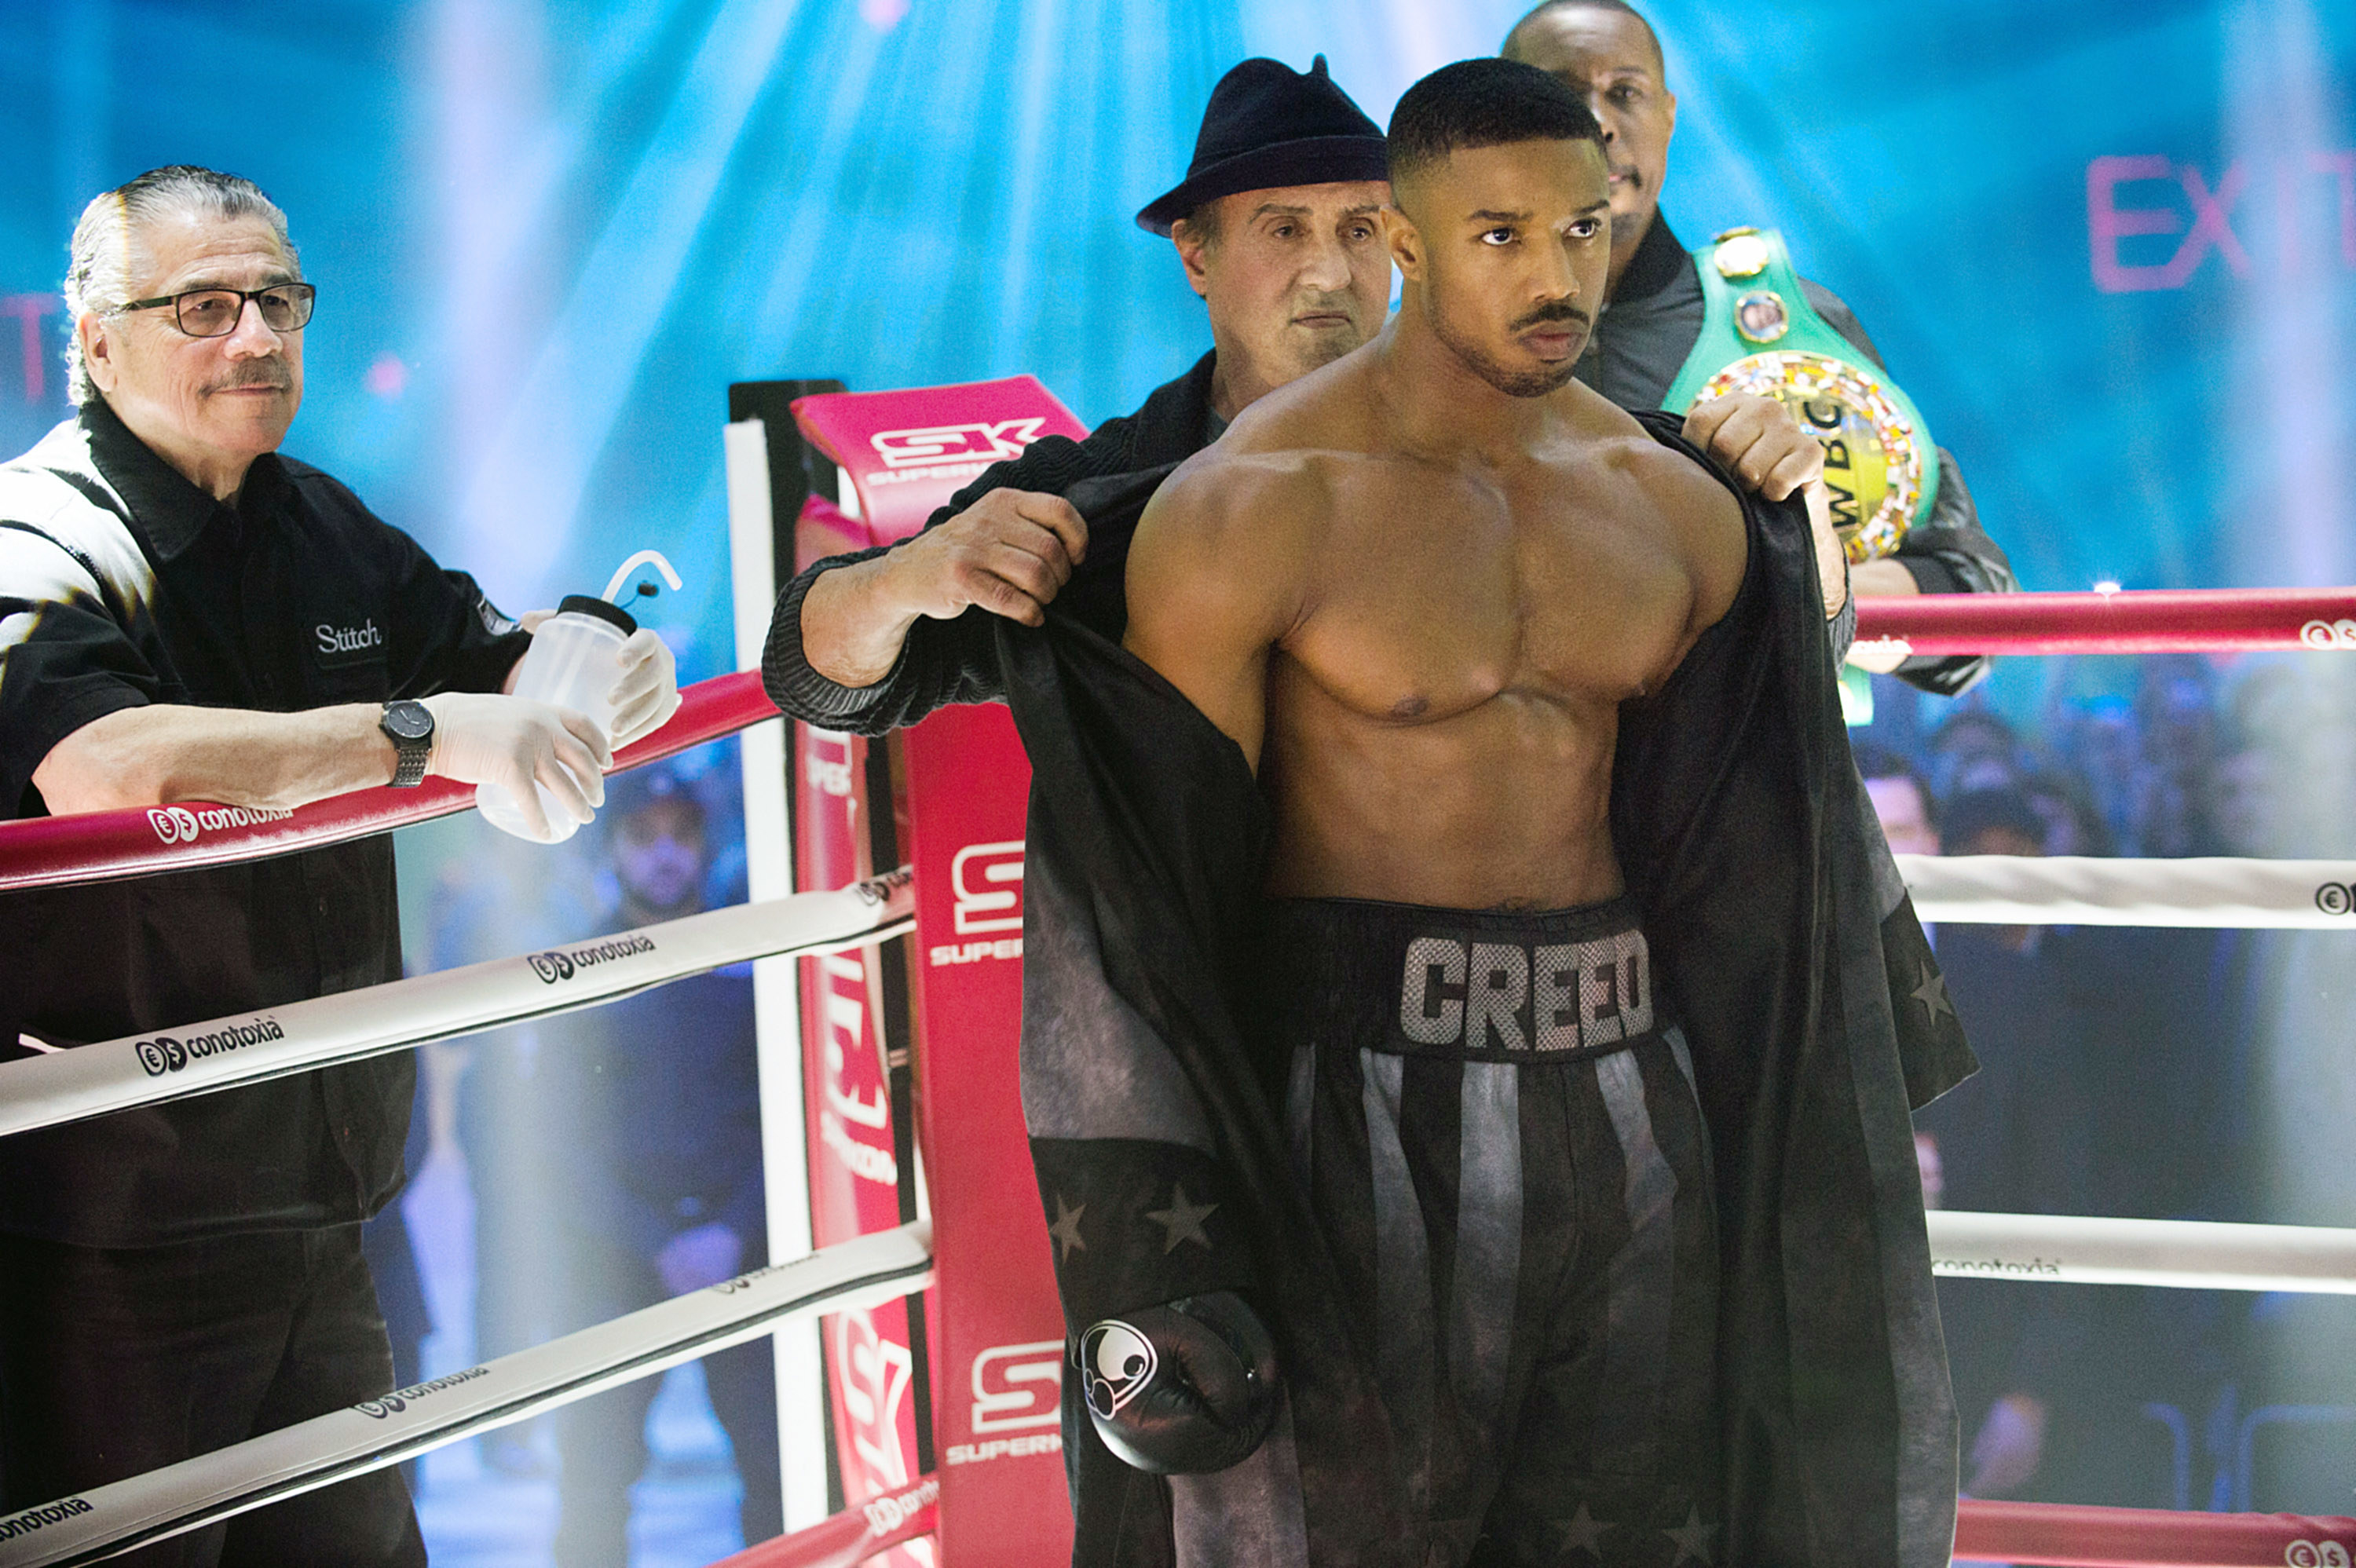 Sylvester Stallone as Rocky taking a robe off of Michael as Adonis Creed before he begins a boxing match